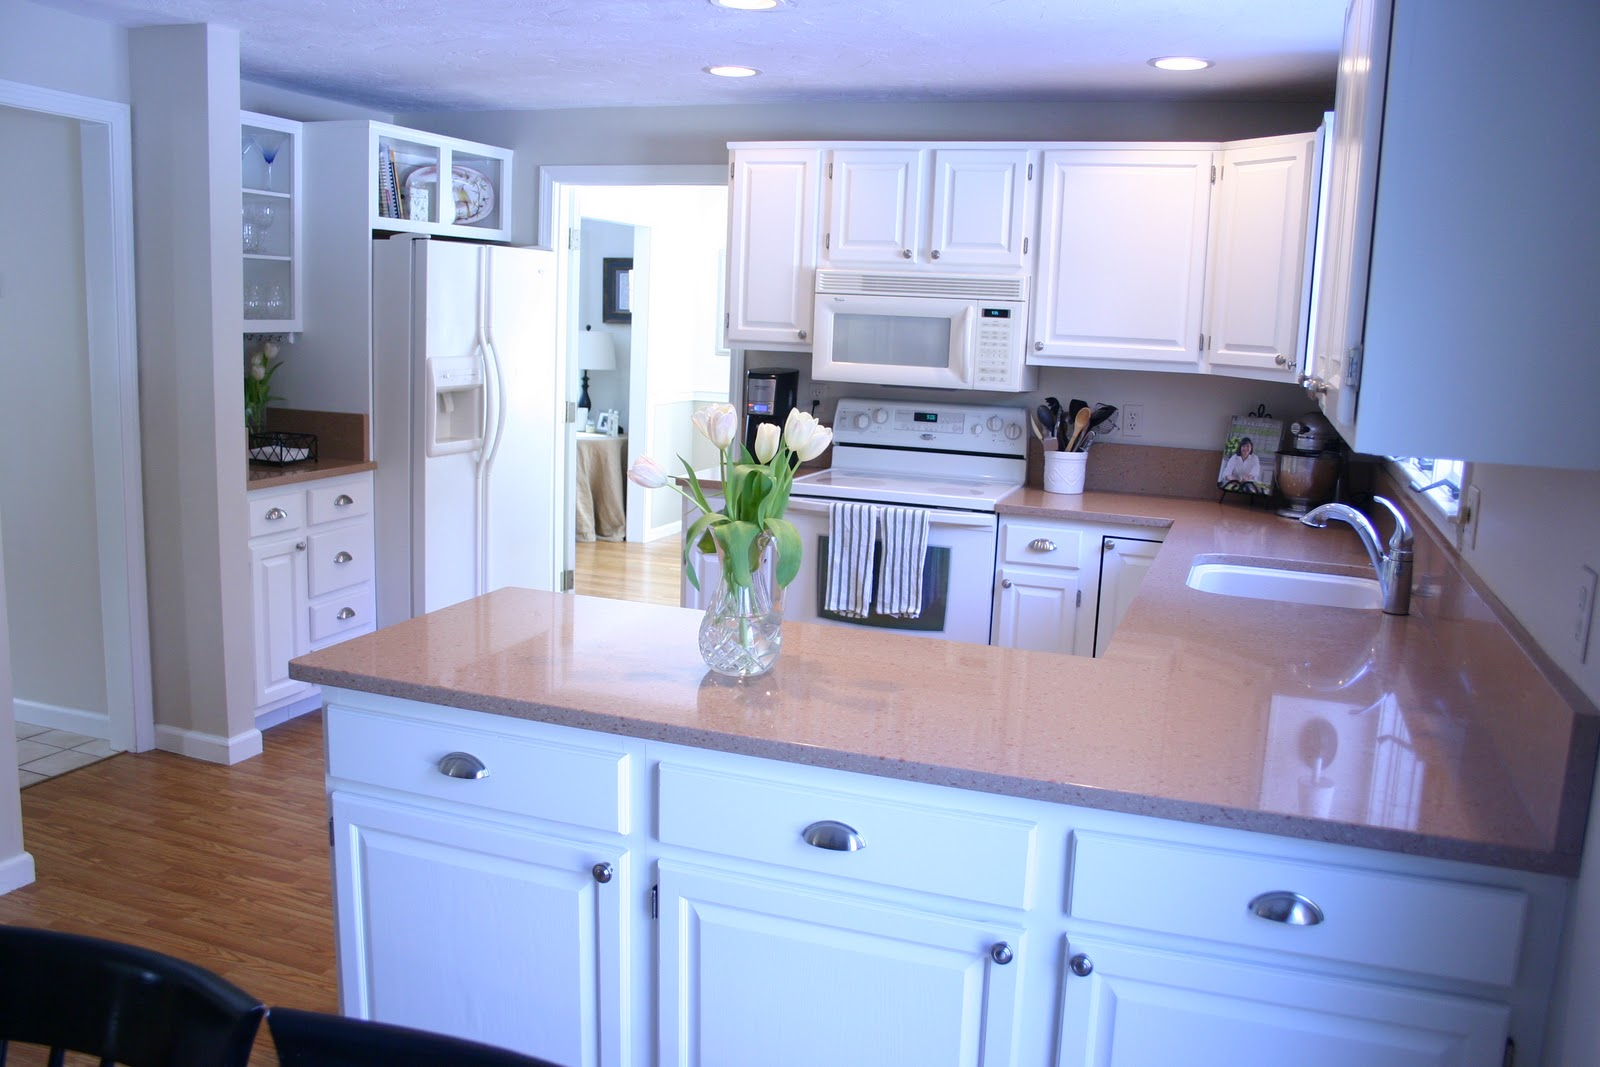 Peach Kitchen Our Kitchen Refreshed And Revealed Shine Your Light